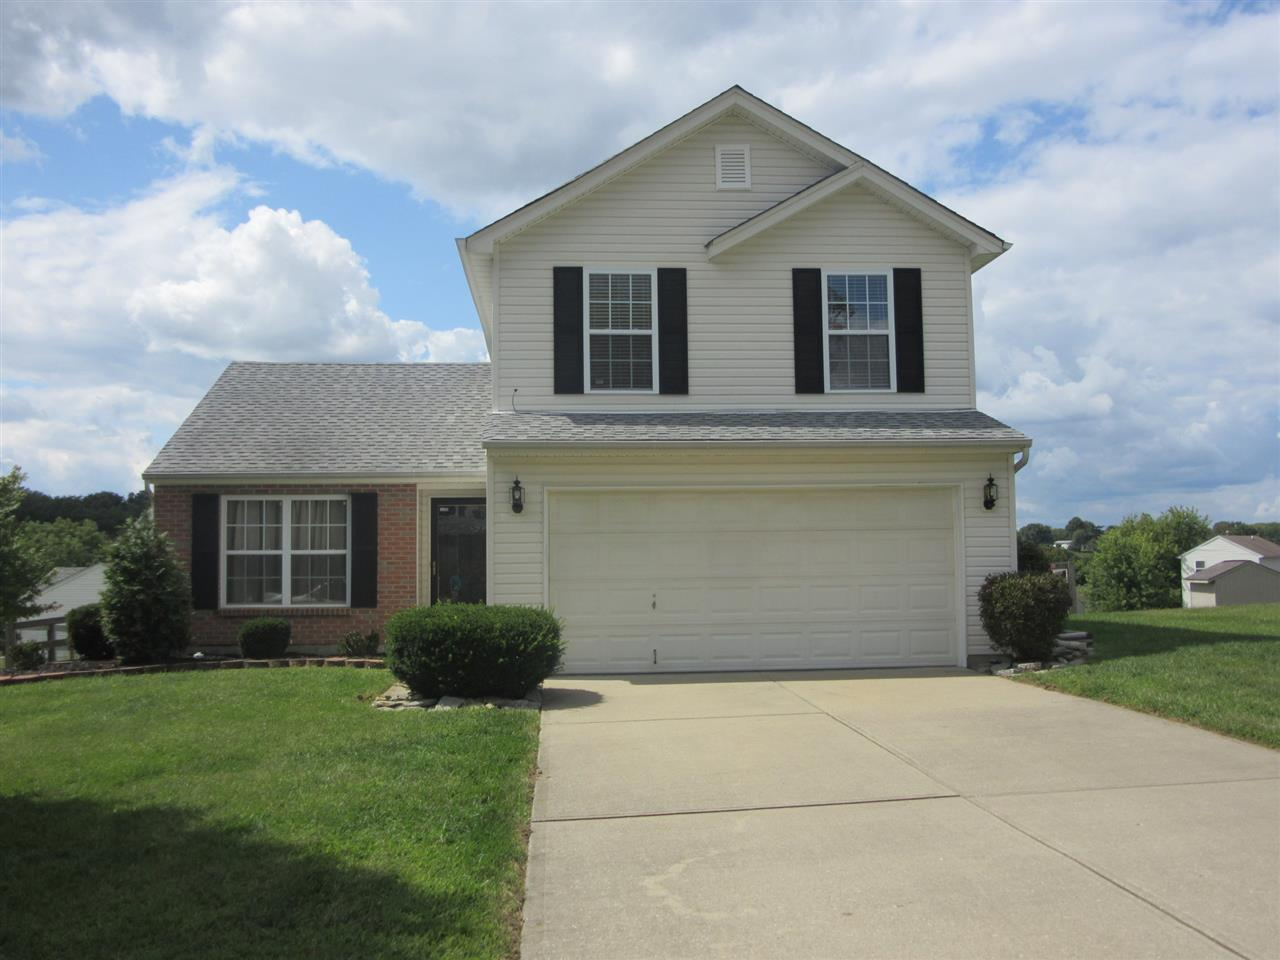 Photo 1 for 5147 Christopher Dr Independence, KY 41051